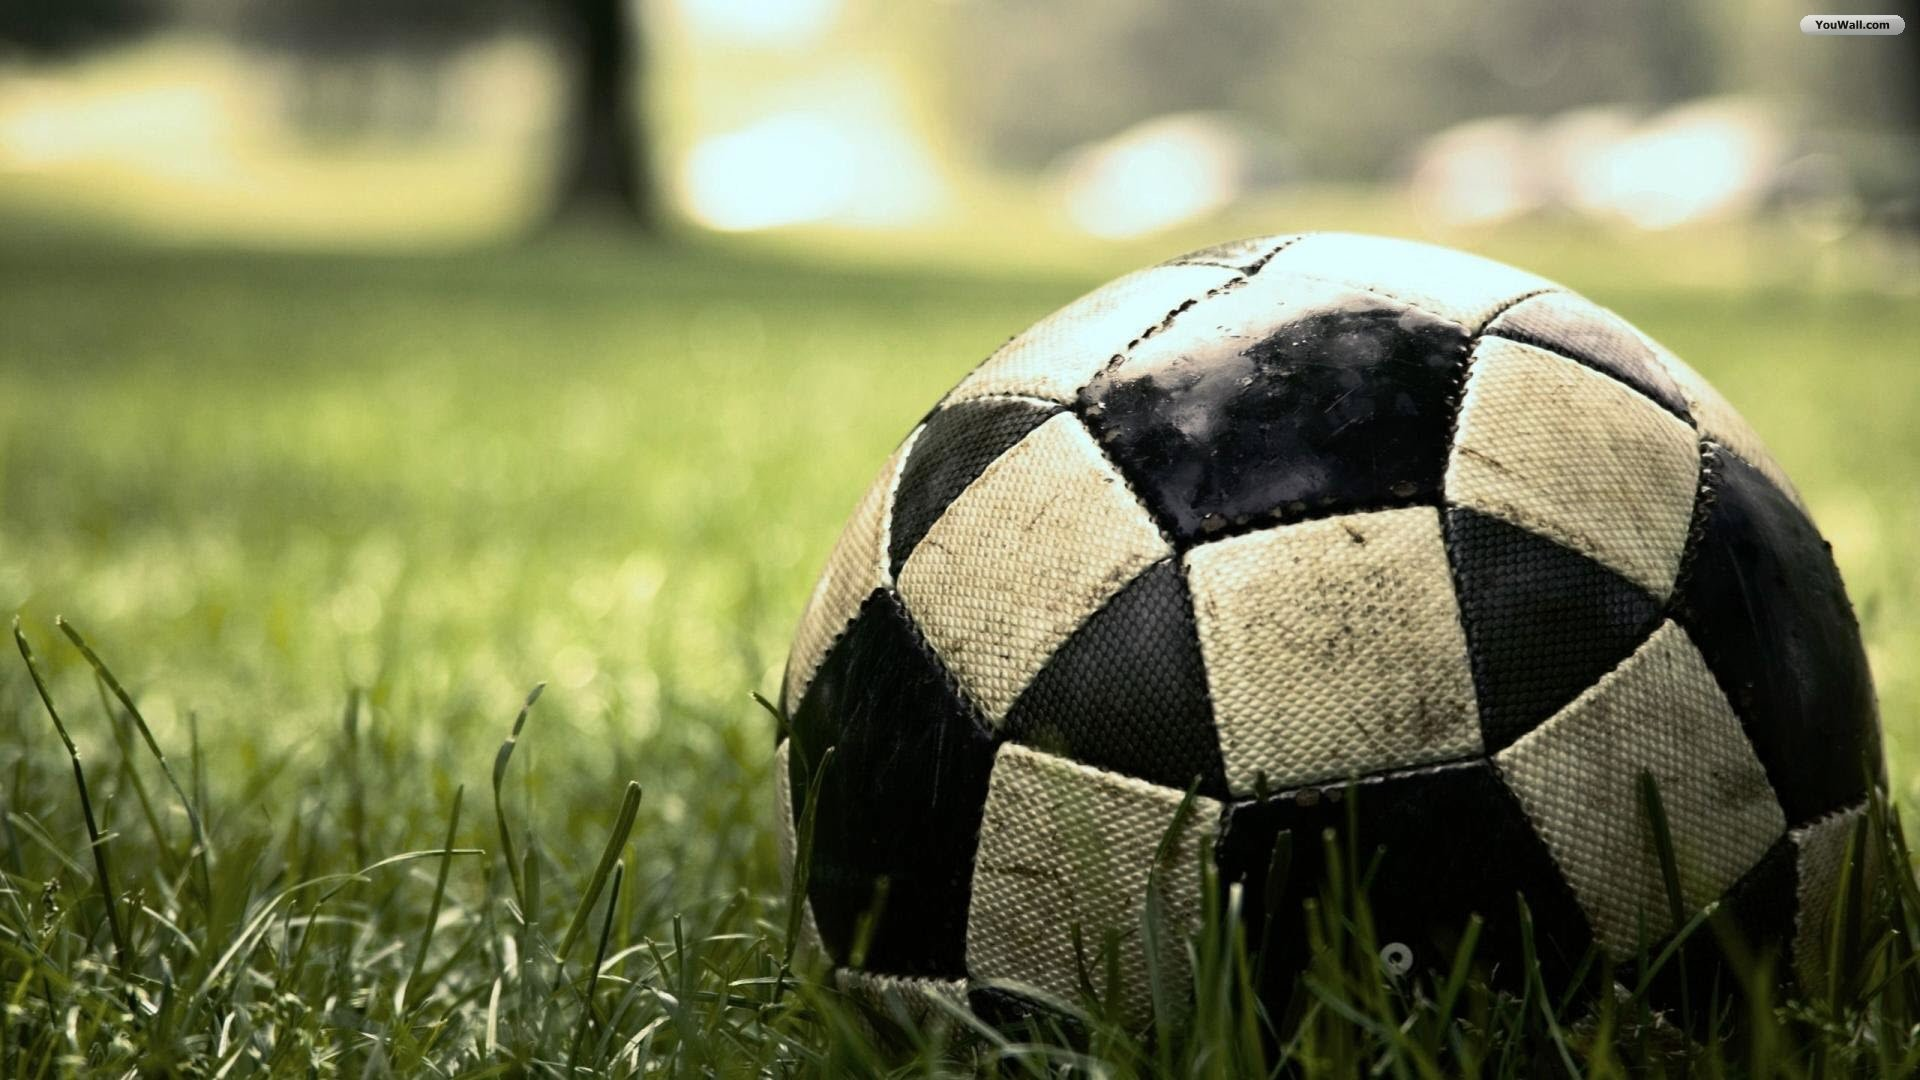 1920x1080 wallpaper girl ball old soccer wallpapers